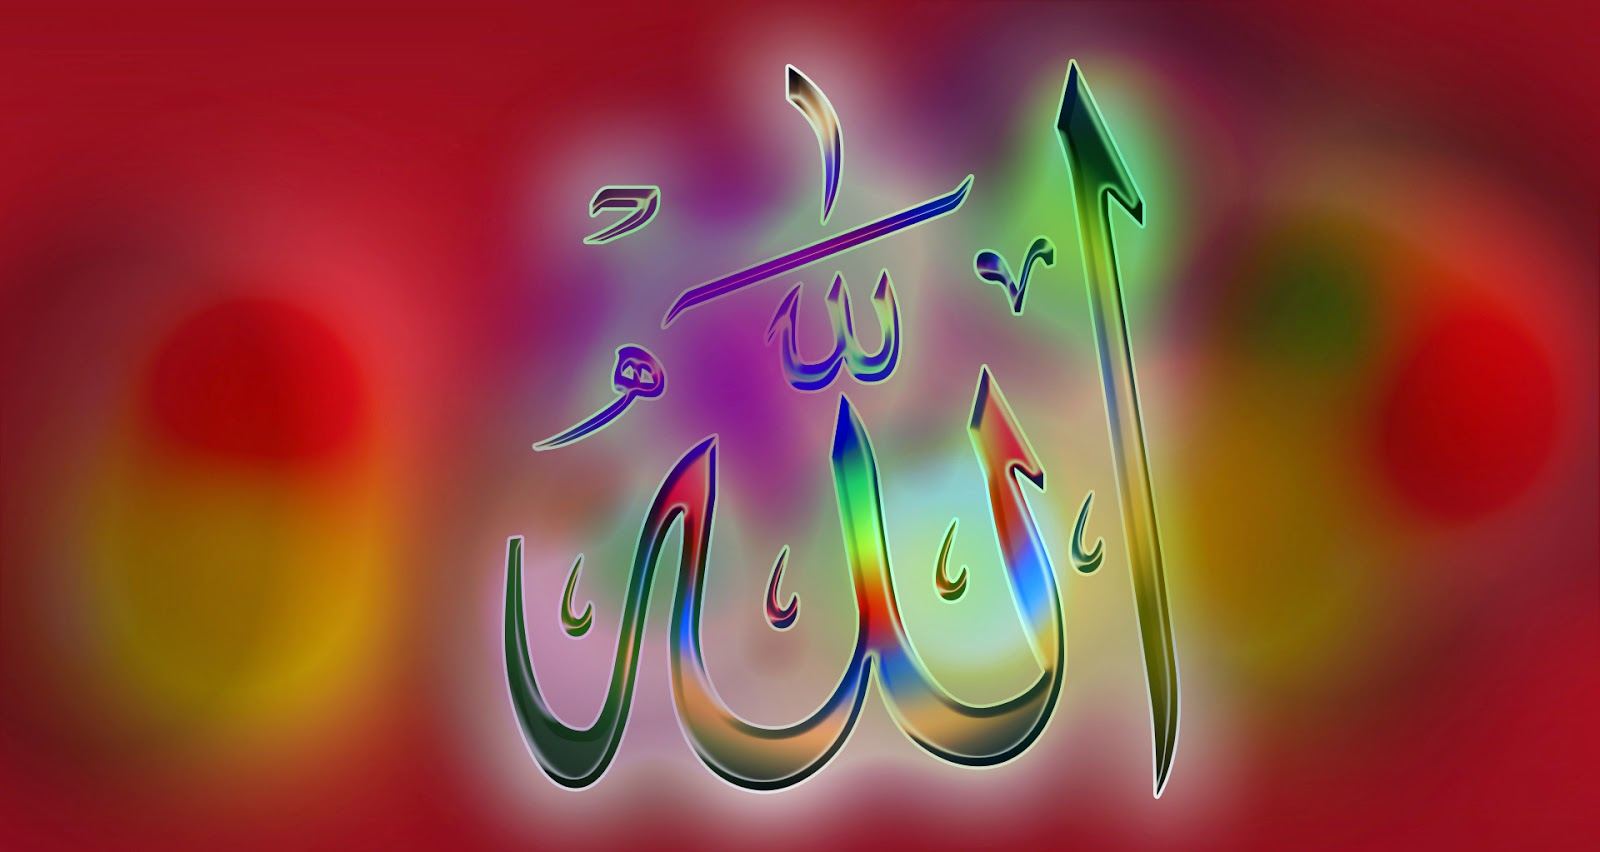 ALLAH Name Multi Color Desktop HD Wallpaper 9 HD Wallpapers 1600x852